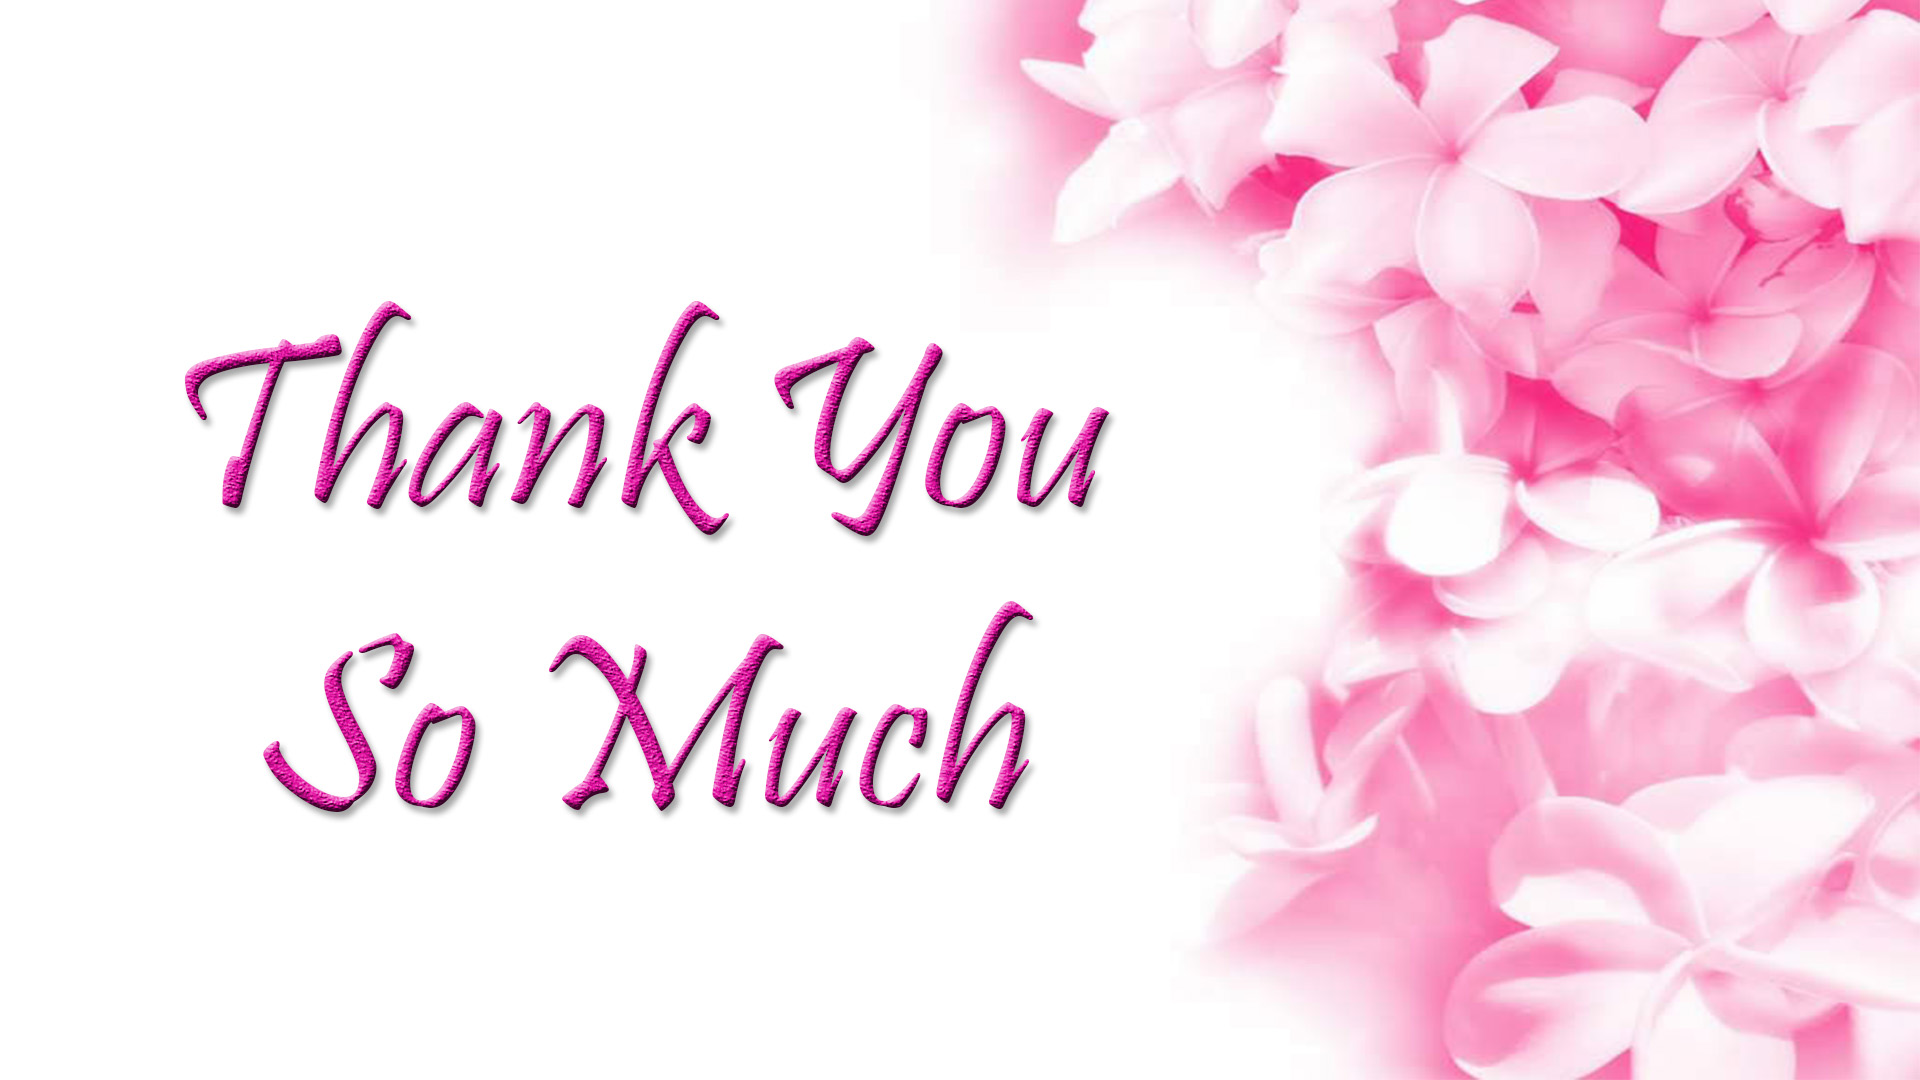 Thank you wishes quotes messages images thank you cards thank you image m4hsunfo